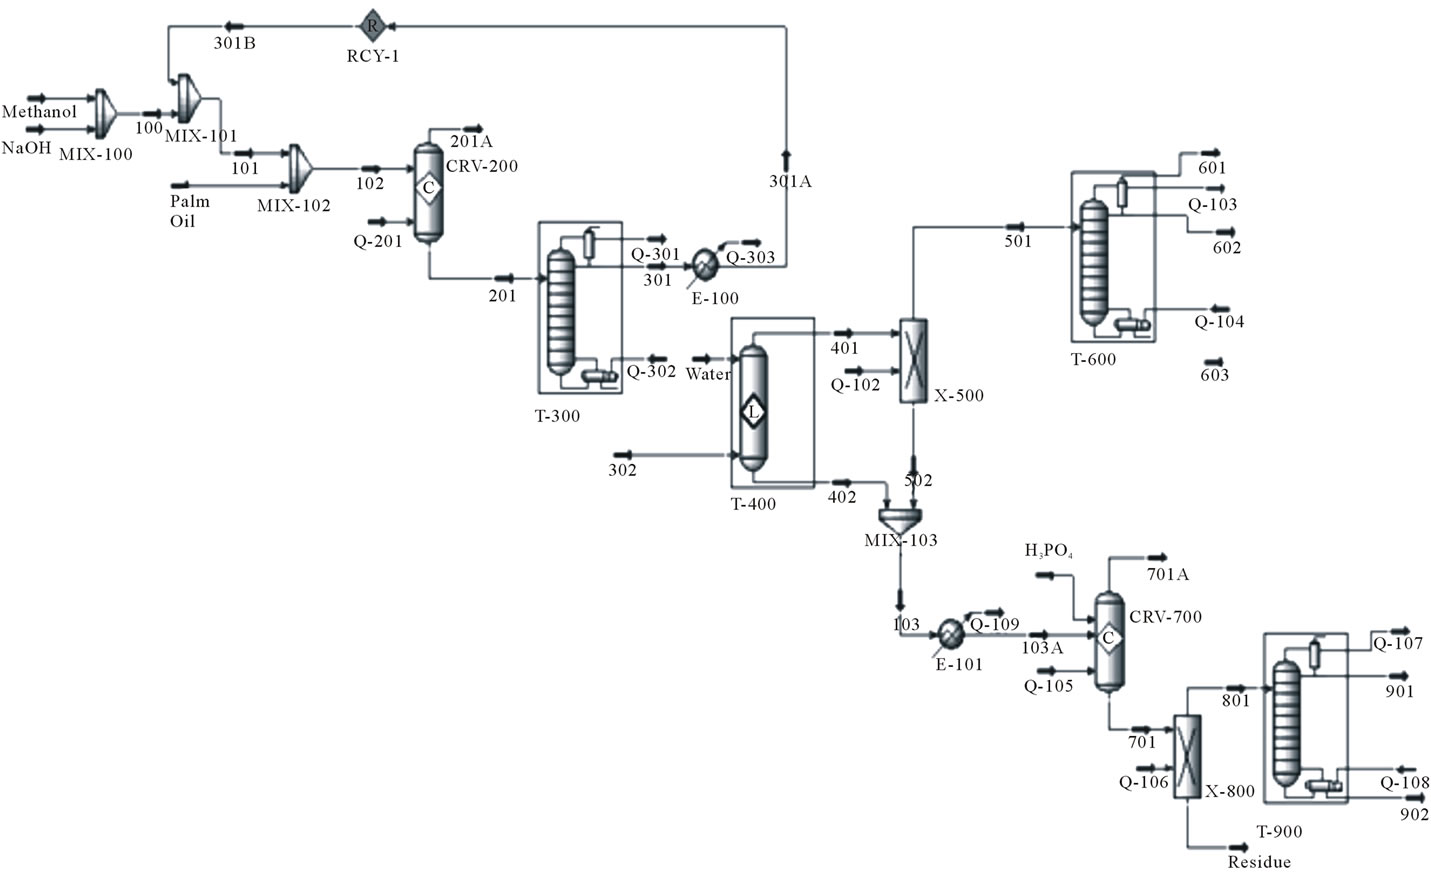 Lca studies for alkaline and enzyme catalyzed biodiesel production the alkali catalyzed process to produce biodiesel from palm oil nvjuhfo Image collections